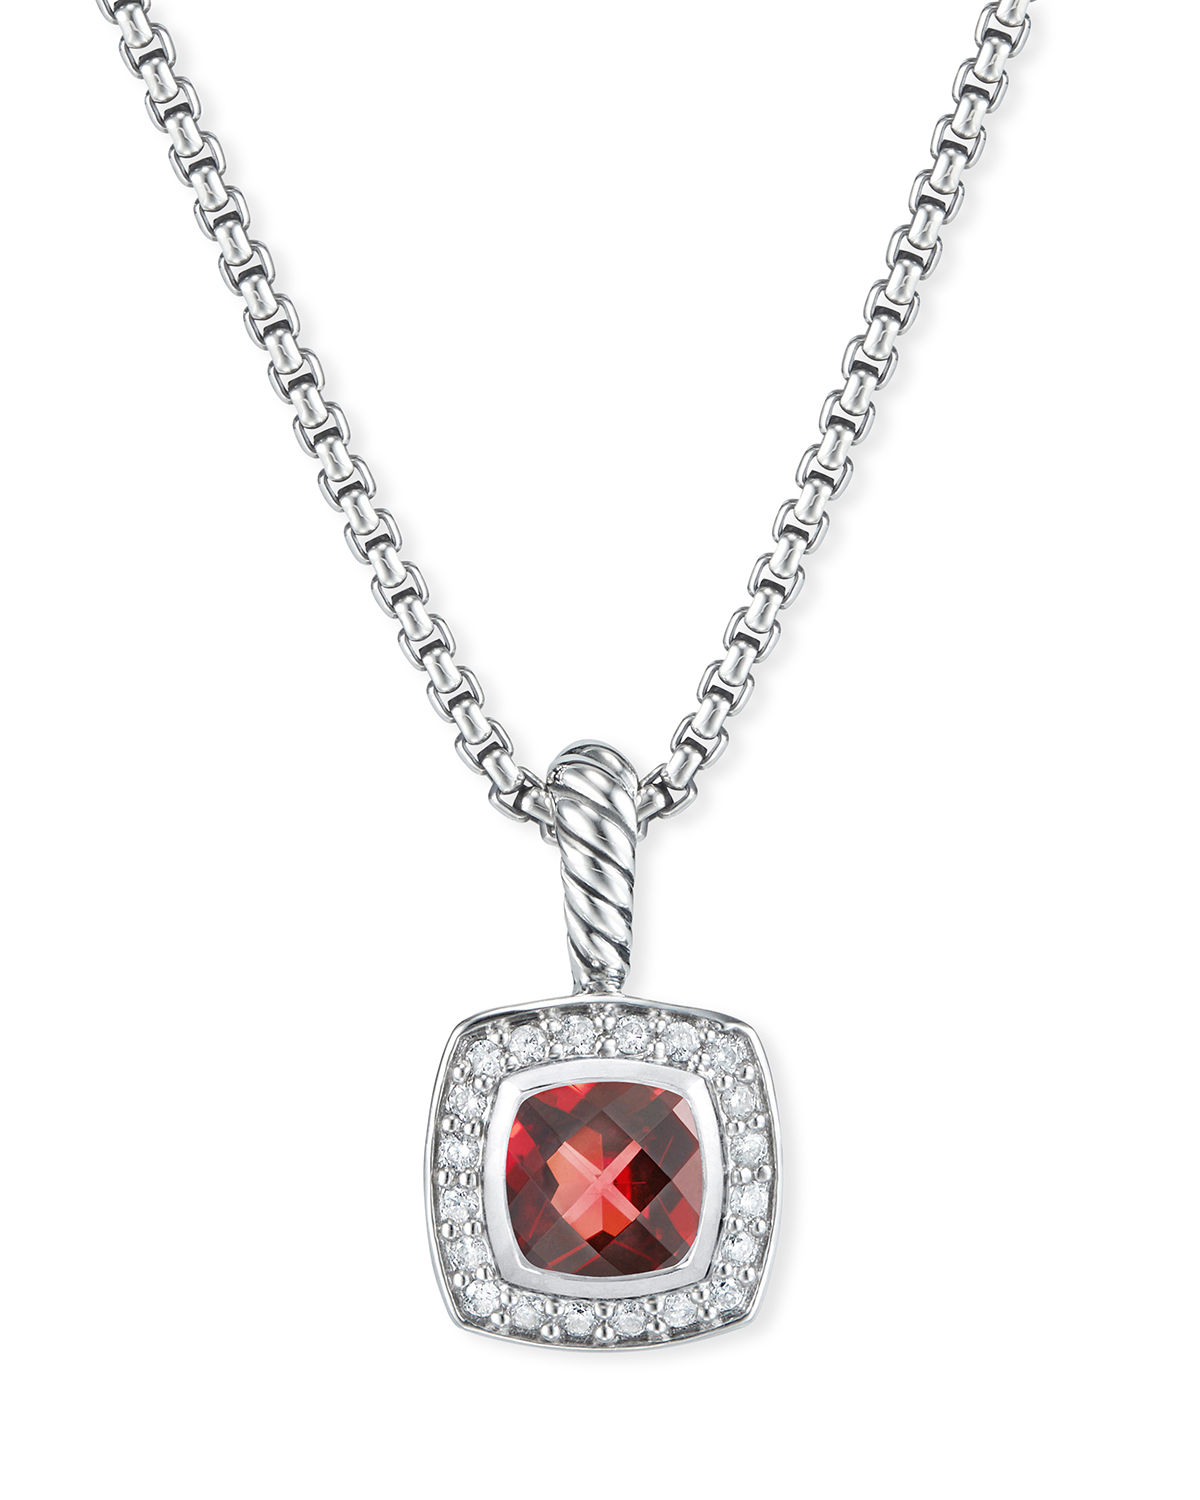 Petite Albion Necklace with Gemstone and Diamonds